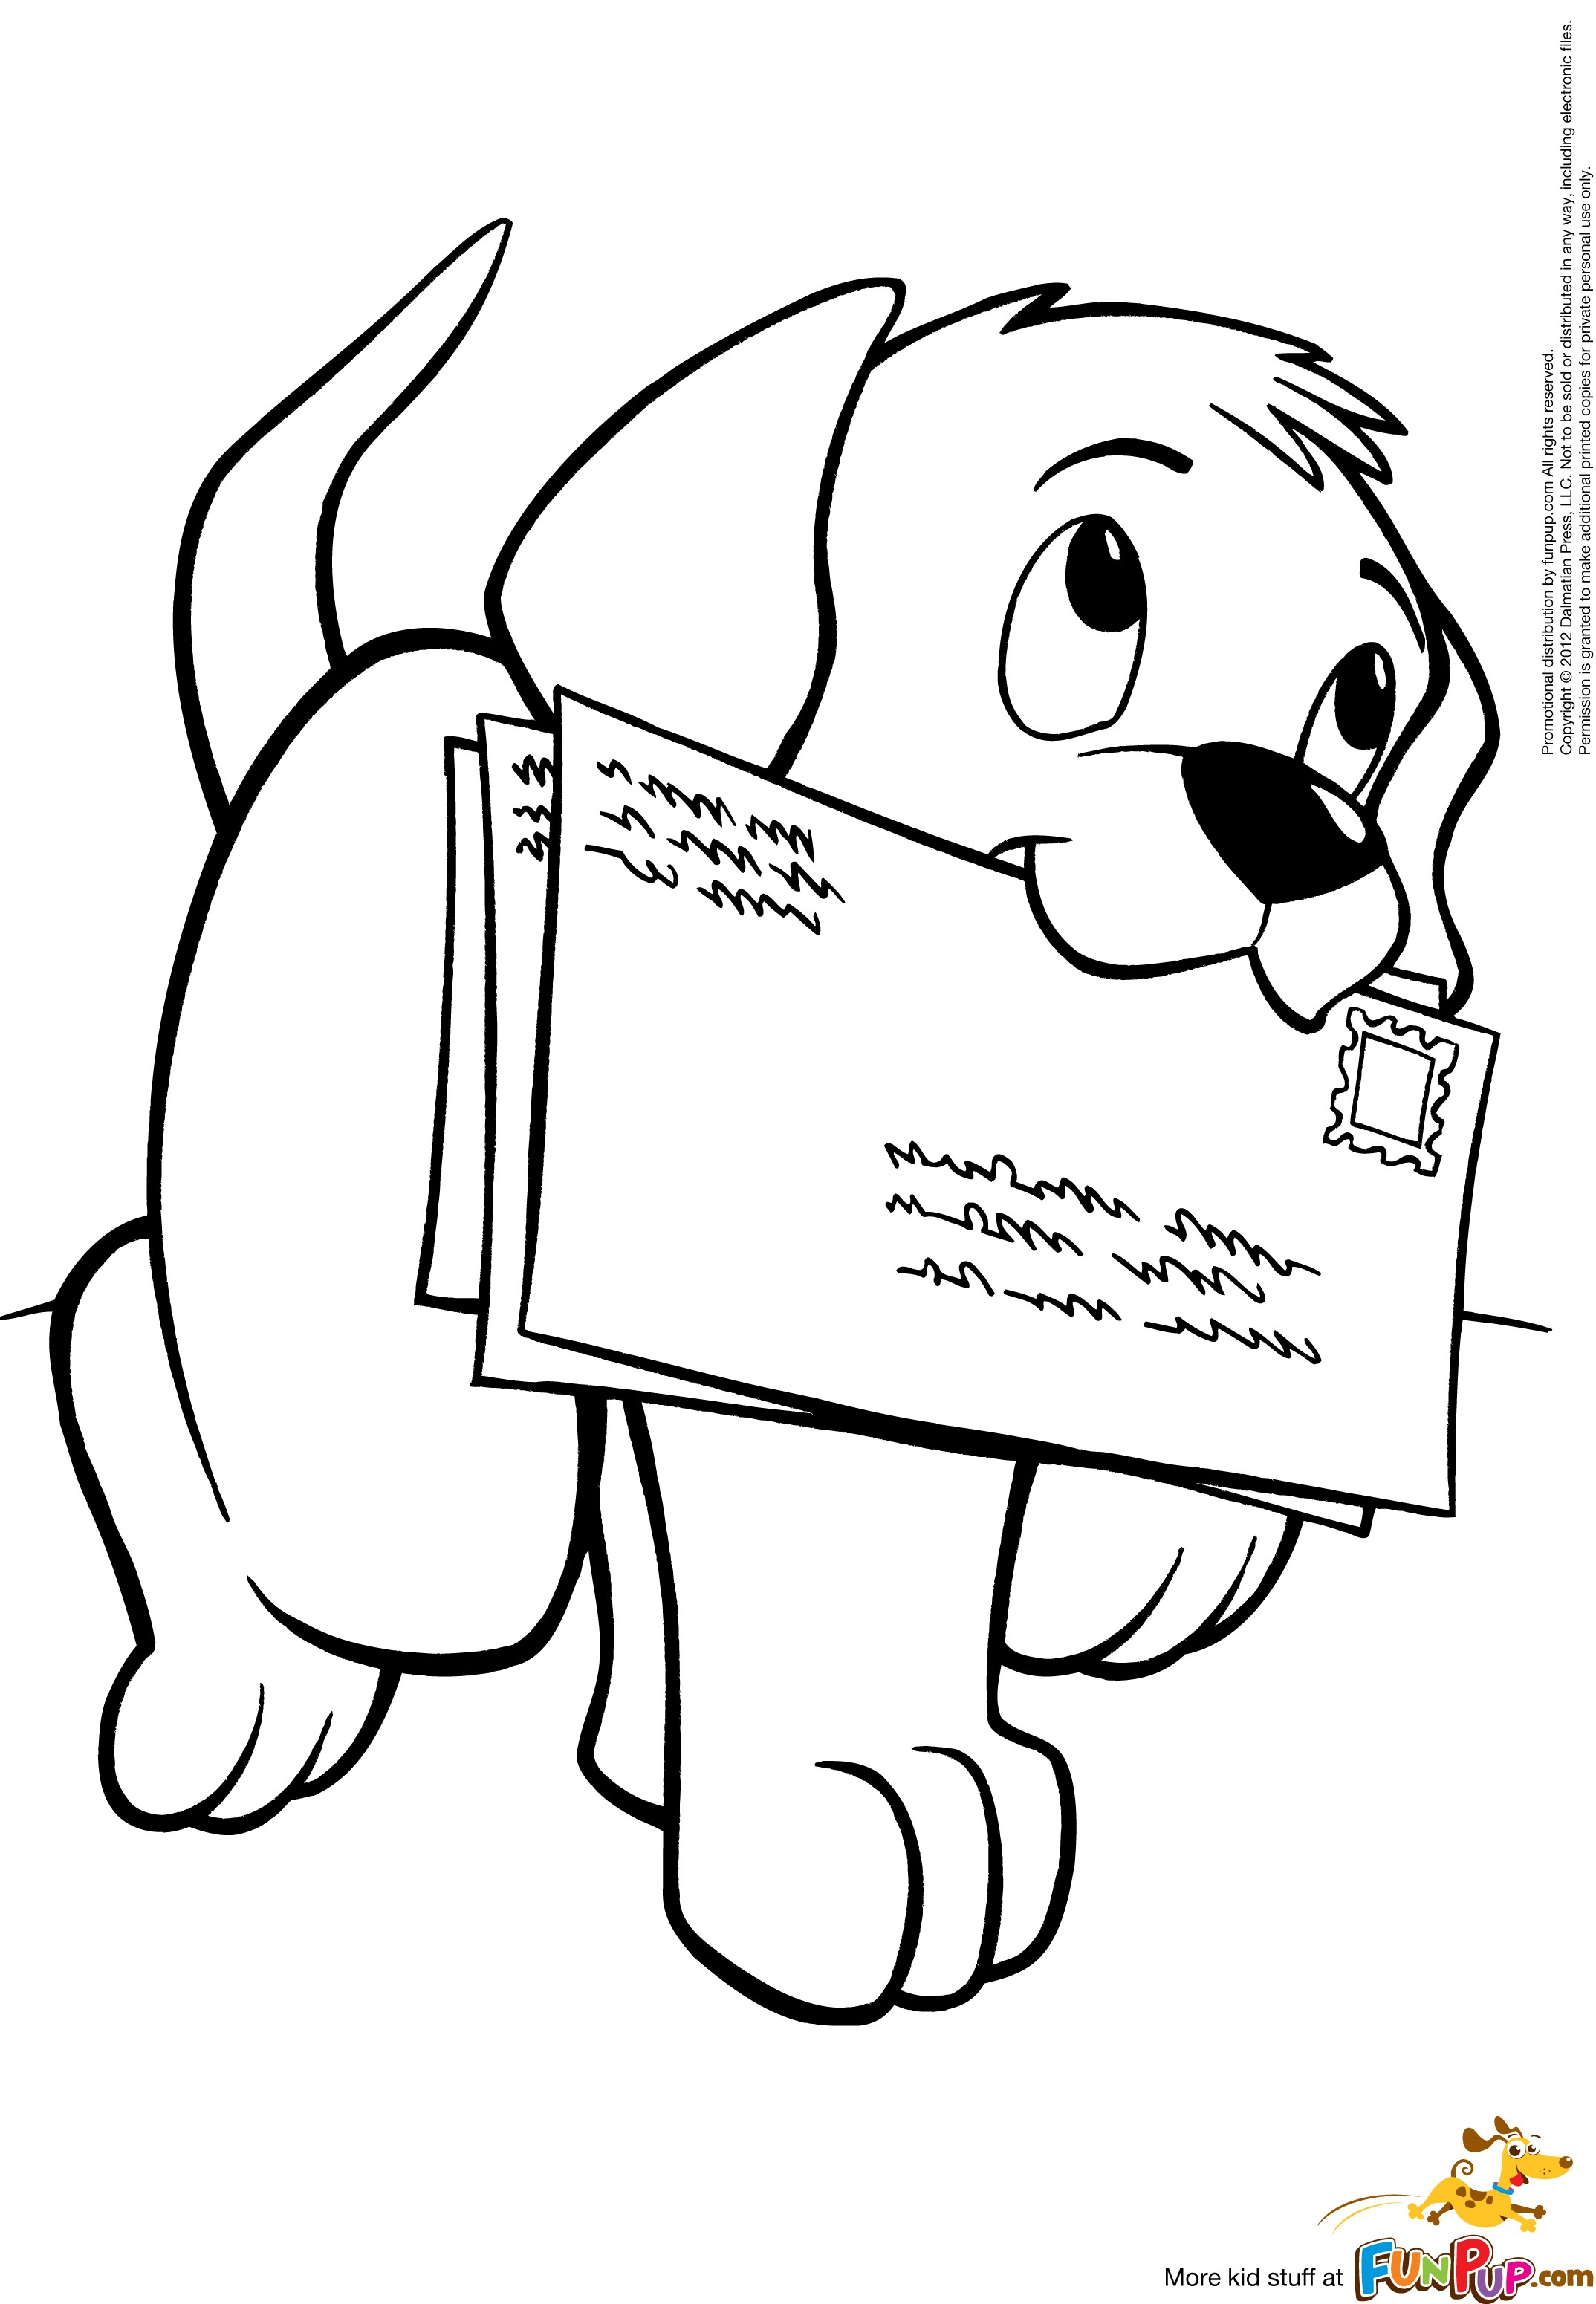 Puppy Coloring Pages For Kids At Getdrawings Com Free For Personal